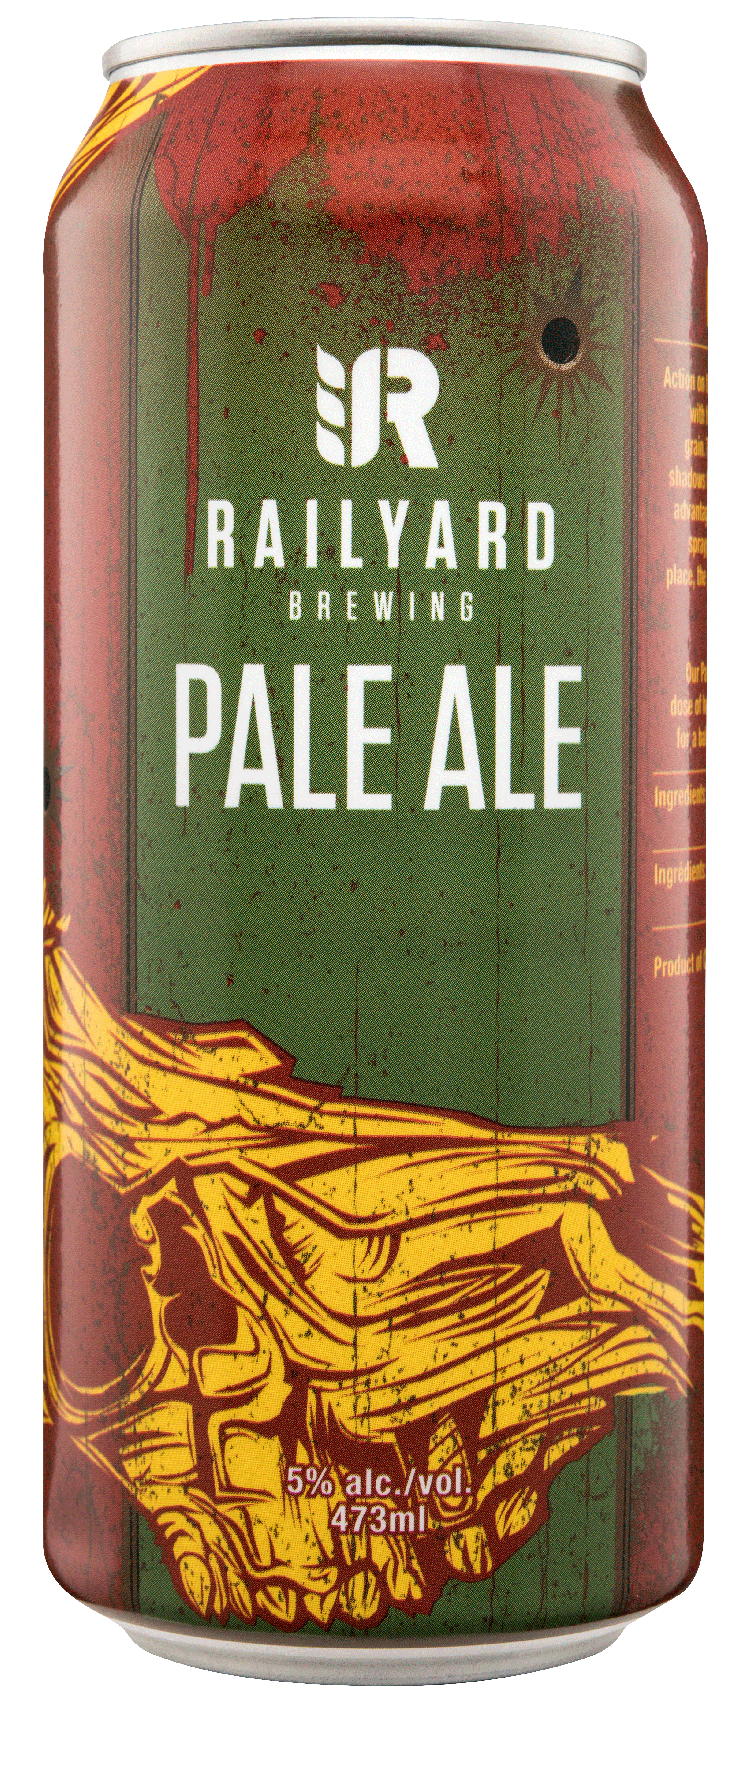 RAILYARD PALE ALE   A classic West-coast stop on the Railyard tracks with the unmistakable grapefruit and orange zest hop from both boil and dry hop additions, balanced with a caramel malt backbone and dried out perfectly to make sure you are getting on board for until the last stop.